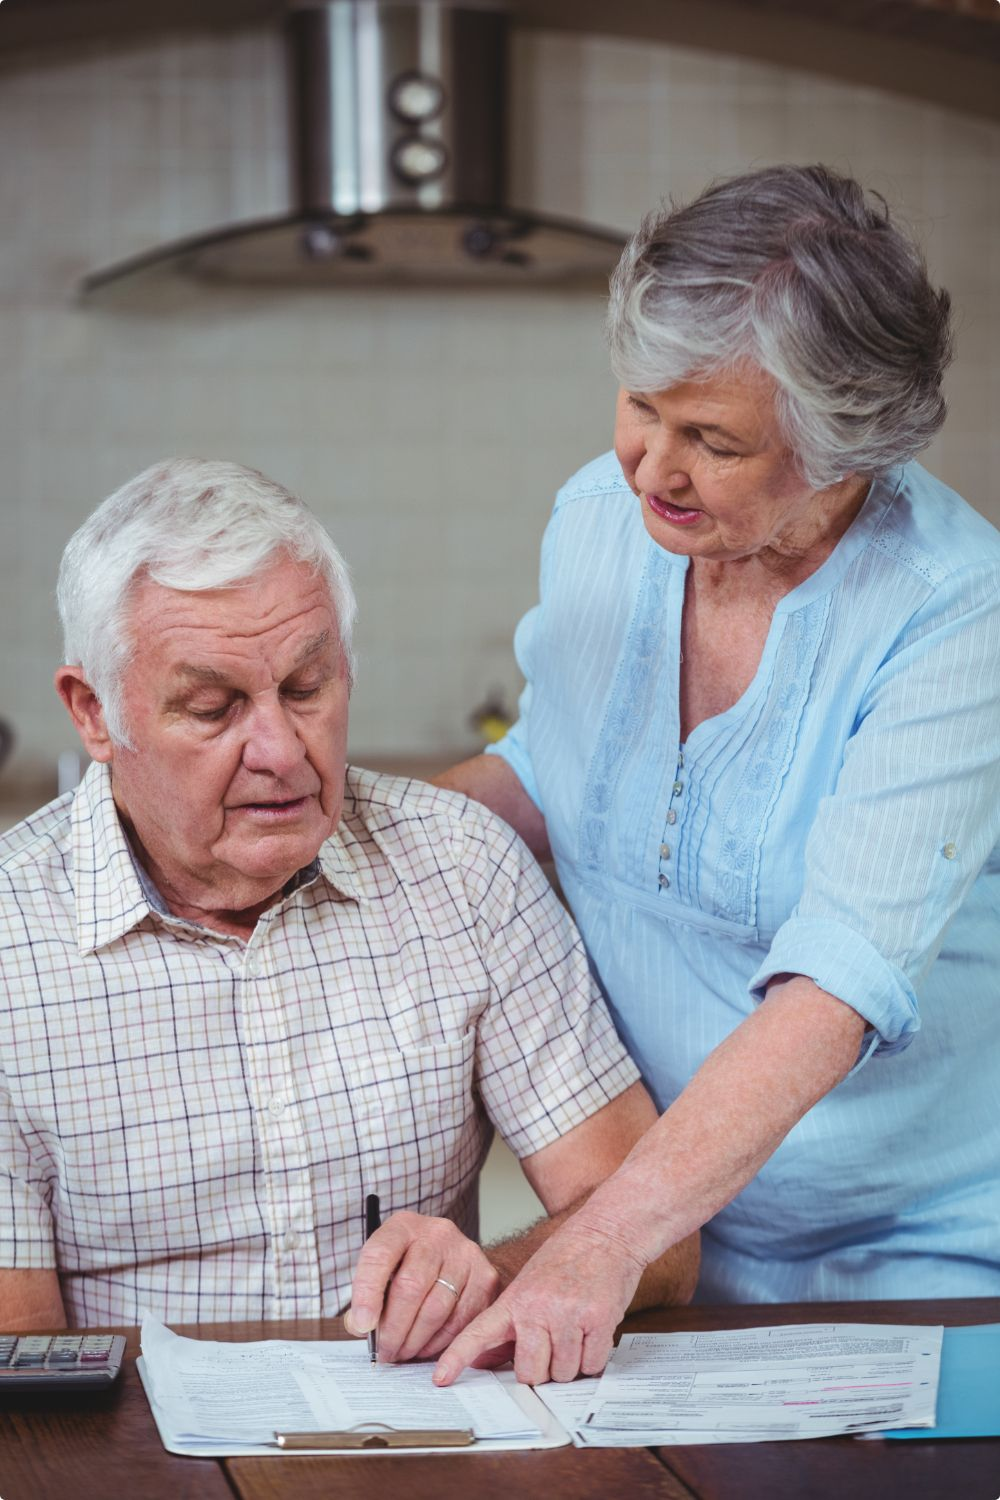 senior-couple-calculating-bills